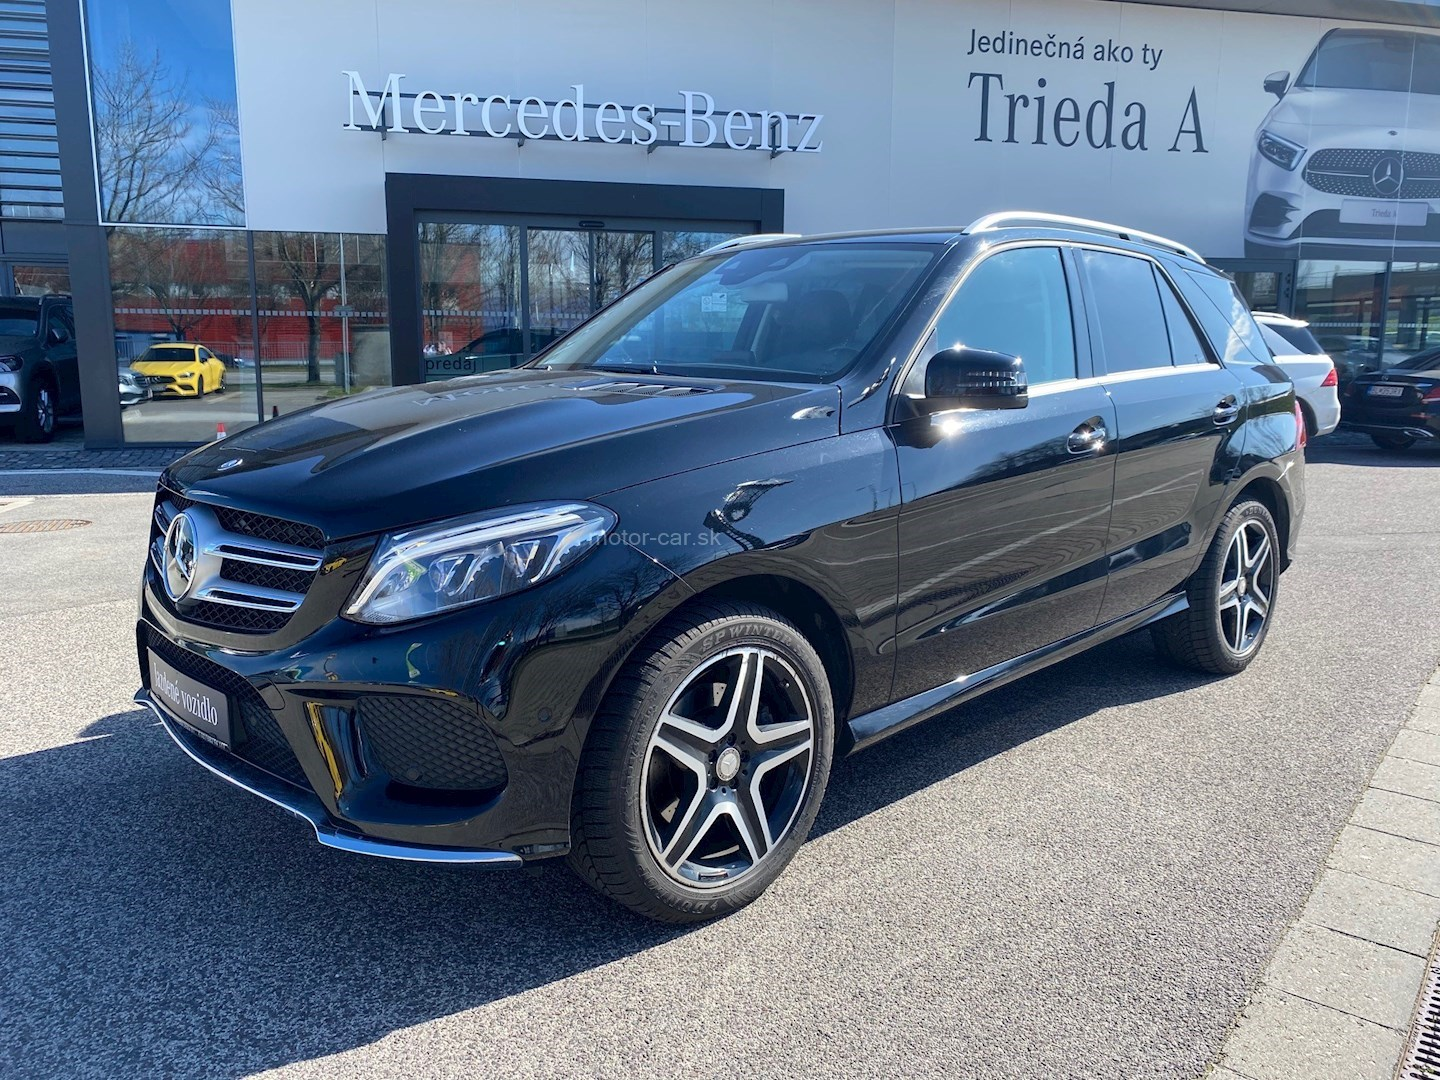 mercedes-benz ml/gle 350 bt/d 4m